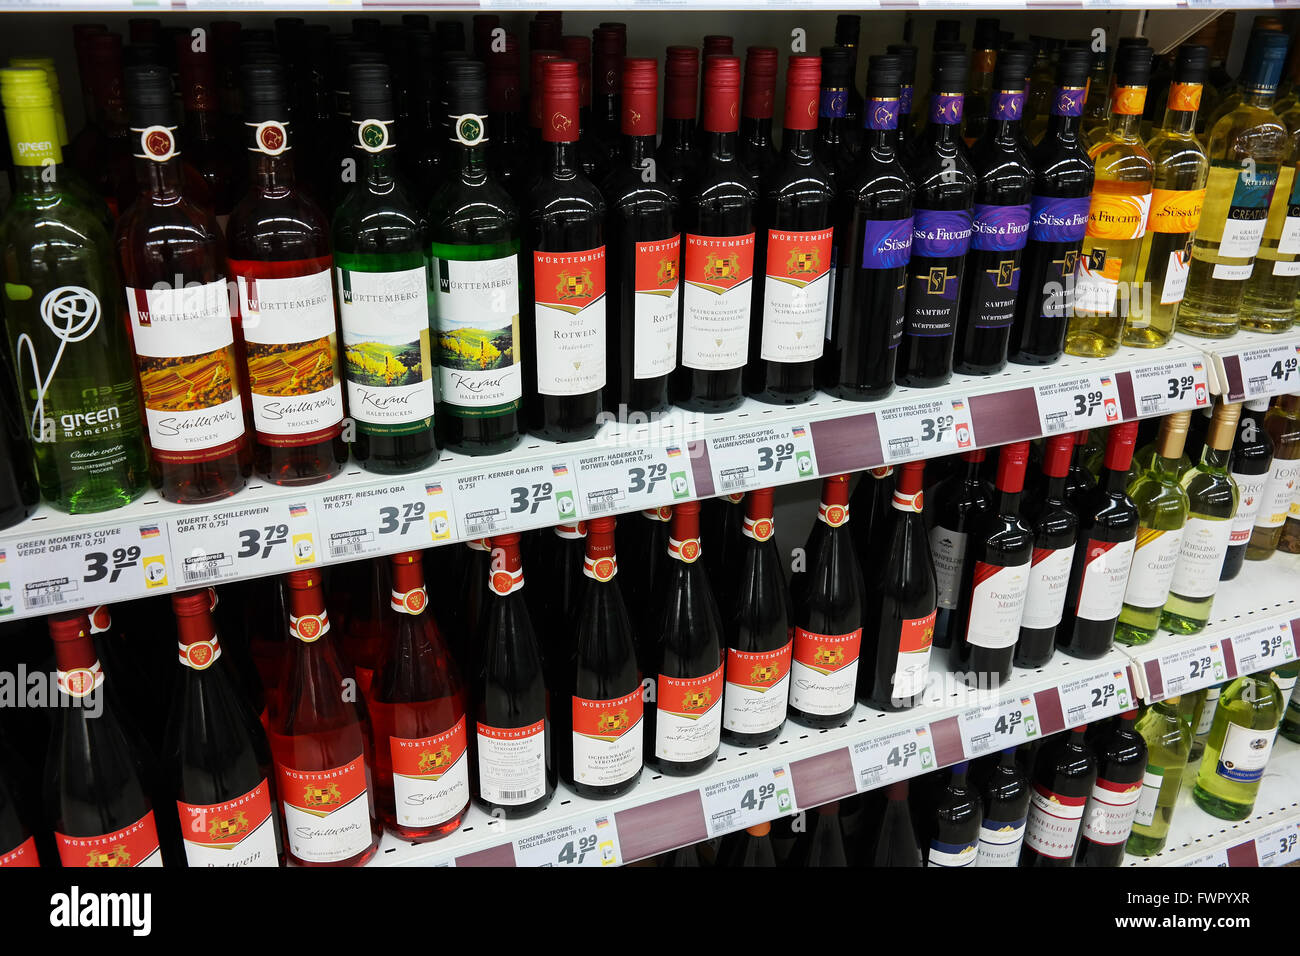 Aisle of German wines in a supermarket. - Stock Image